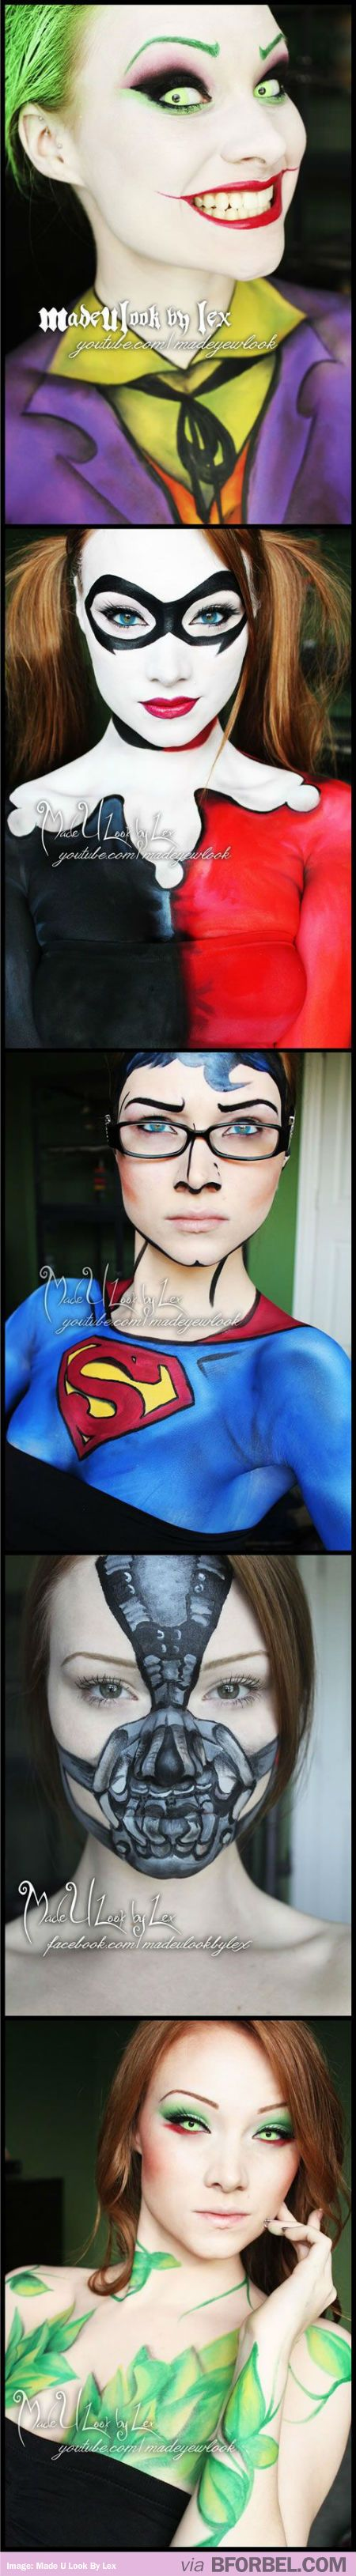 Crazy Awesome Face And Body Make Up Inspired By Superheroes And Villains…